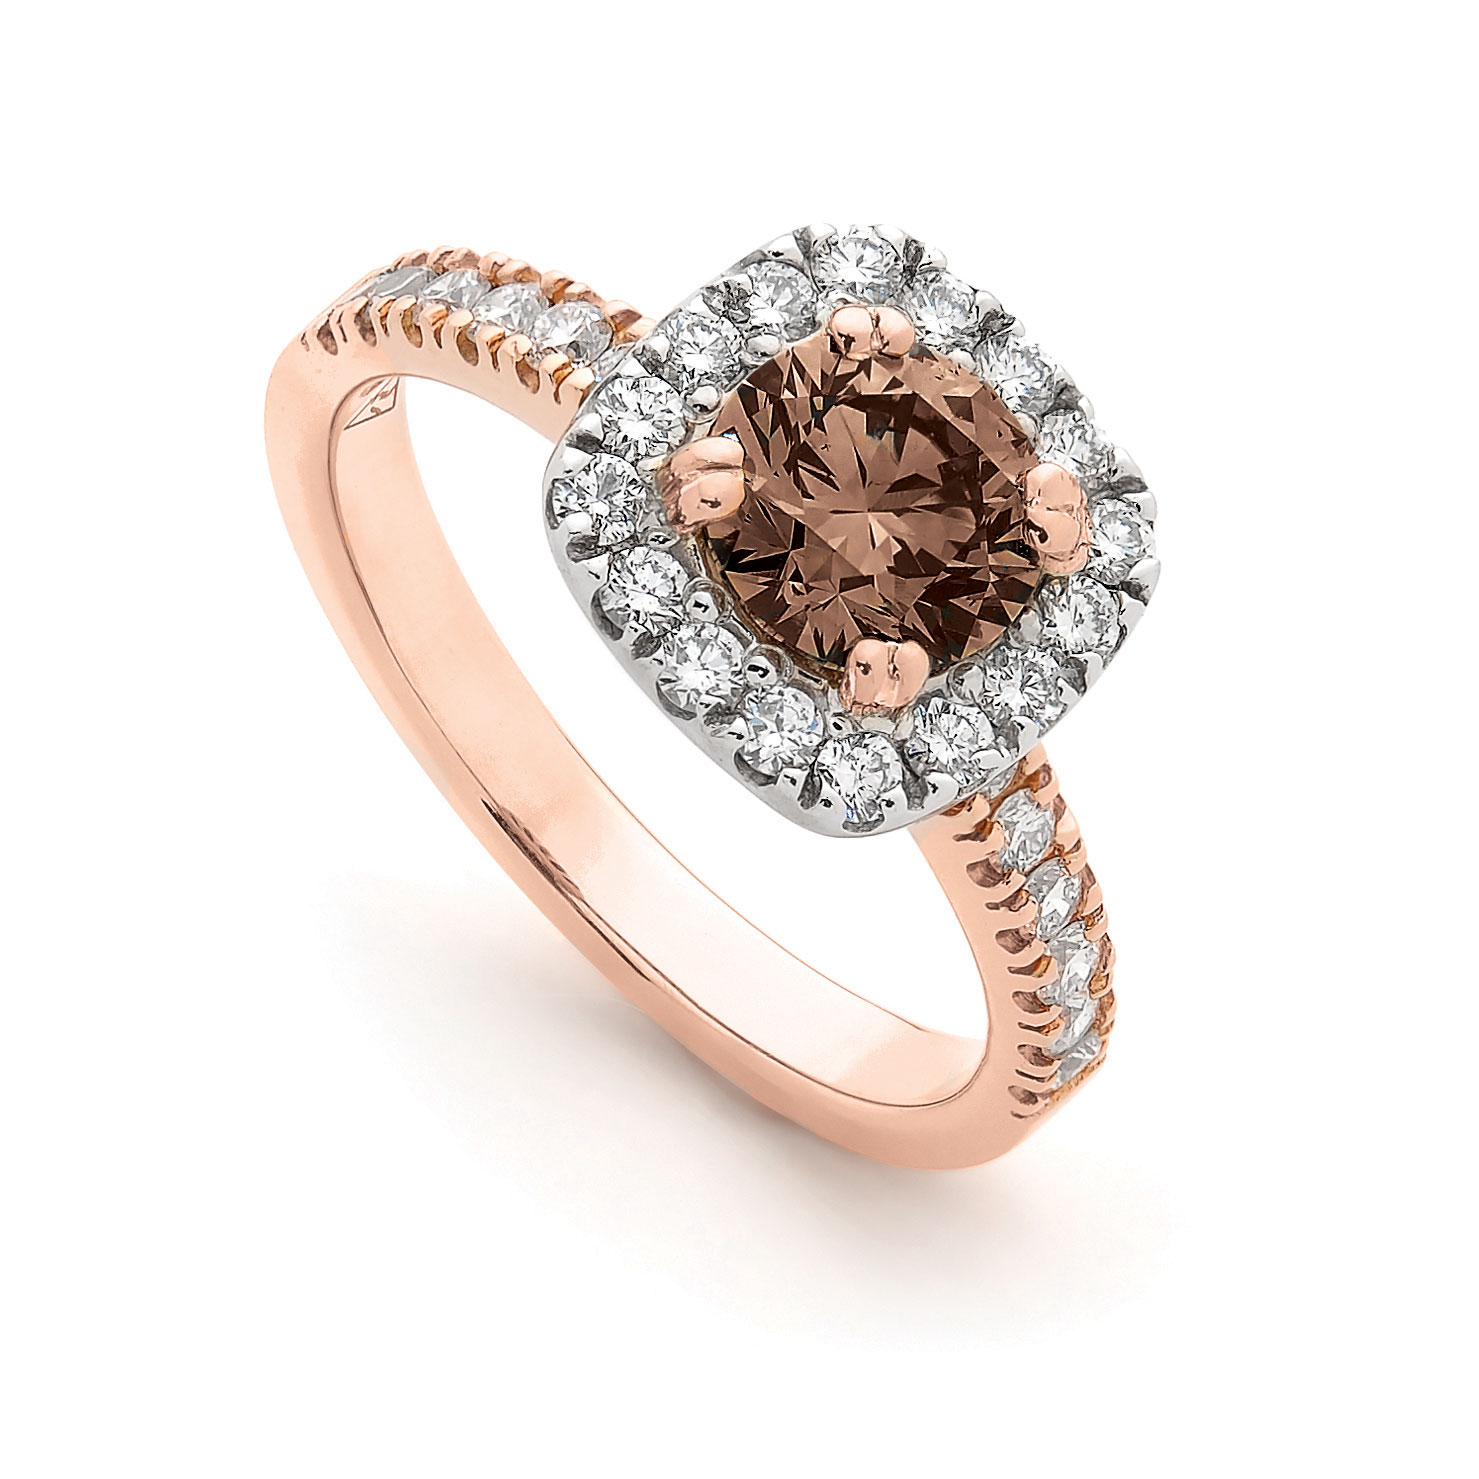 gallery engagement rings inside bands incredible view of chocolate gold diamond diamonds attachment full hd wedding interesting rose